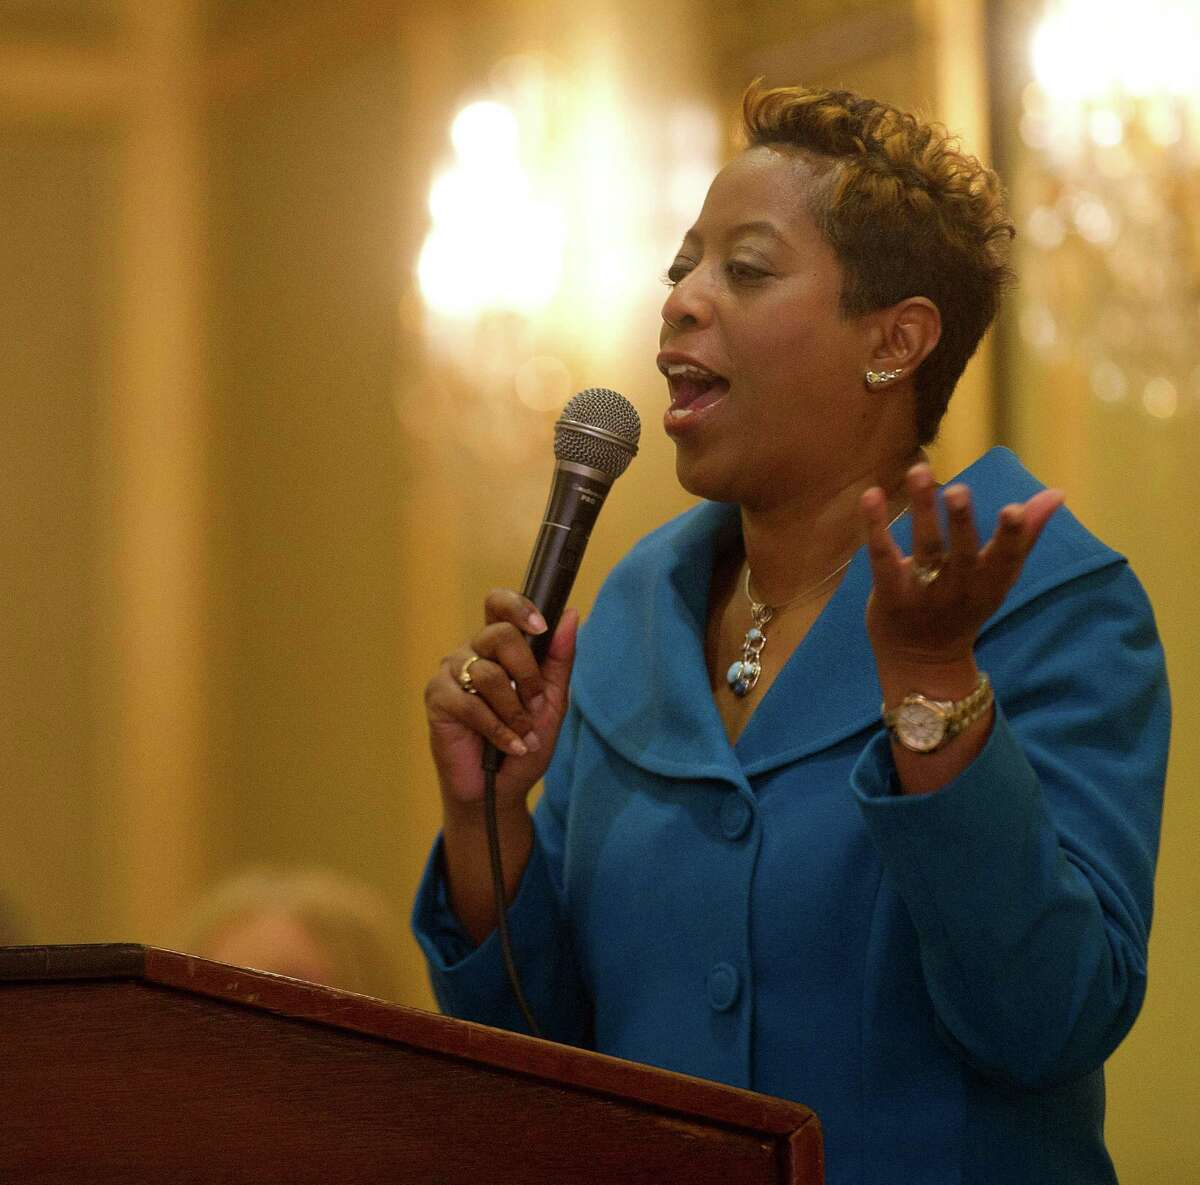 Dorye Jackson, Mistress of Ceremony, speaks during the Stamford NAACP annual freedom fund and awards dinner at the Stamford Plaza Hotel in Stamford, Conn., on Friday, October 25, 2013.